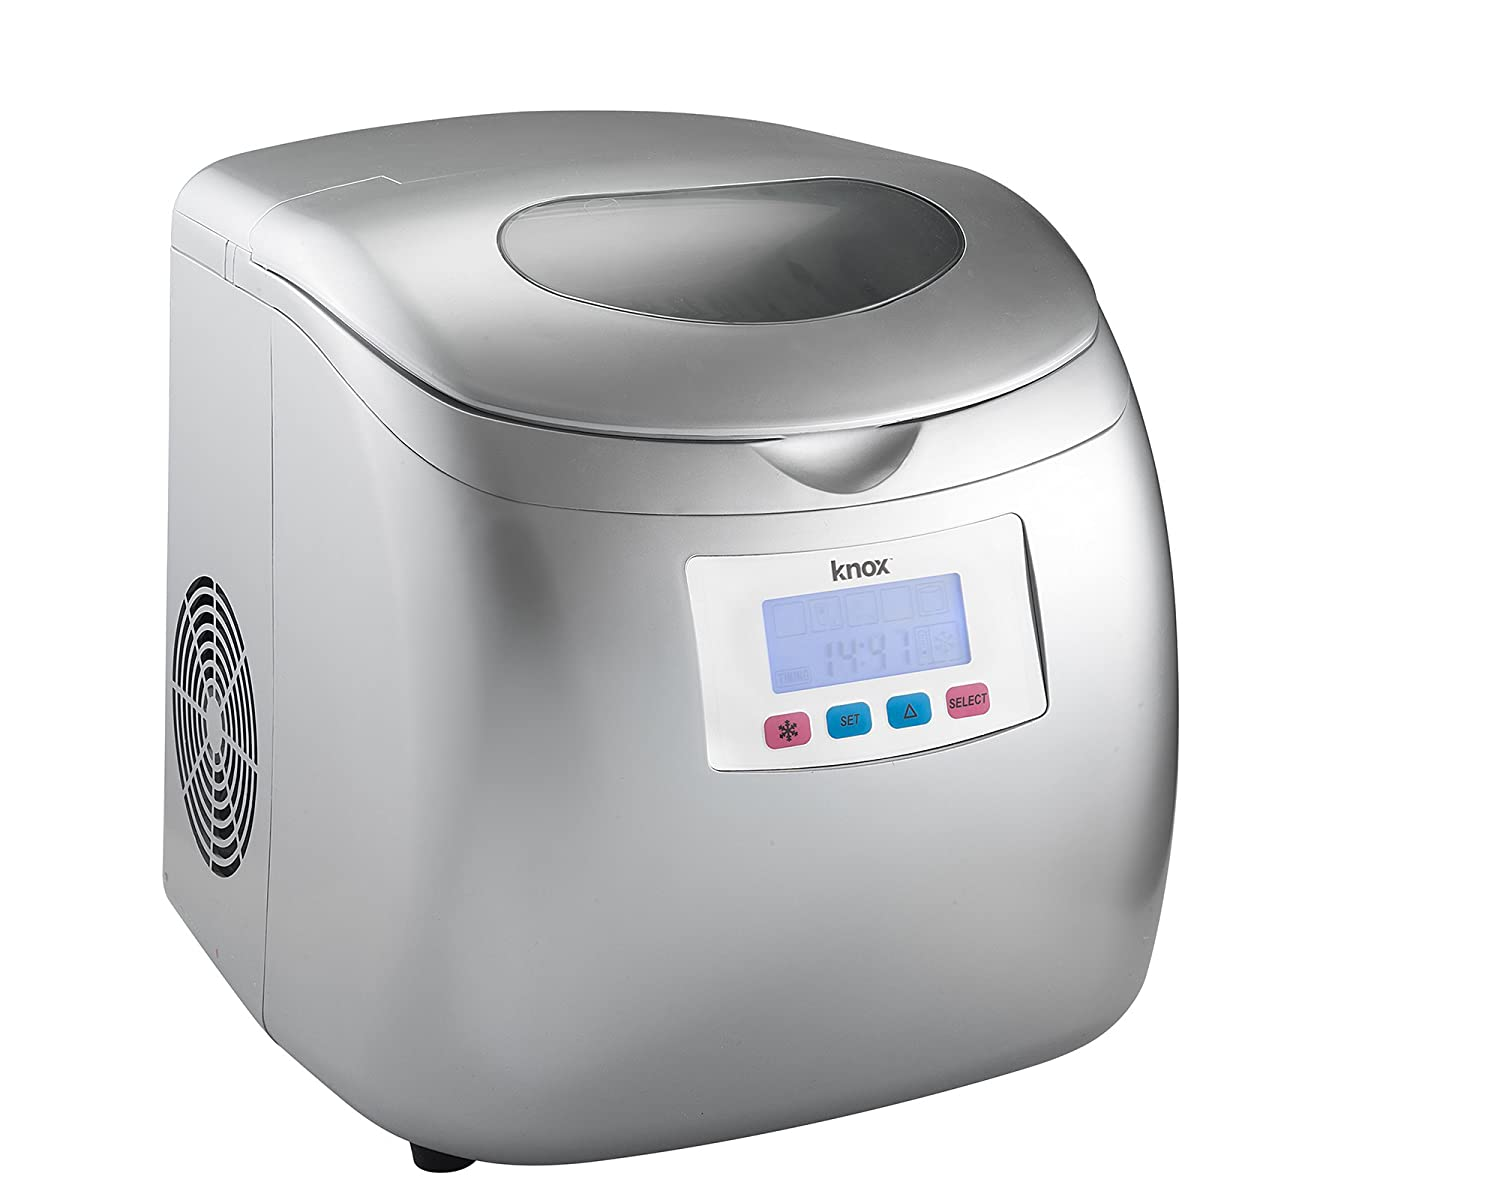 Knox KN-IM27S: Portable Compact Ice Maker that can Provide Safe and Quick Ice Production